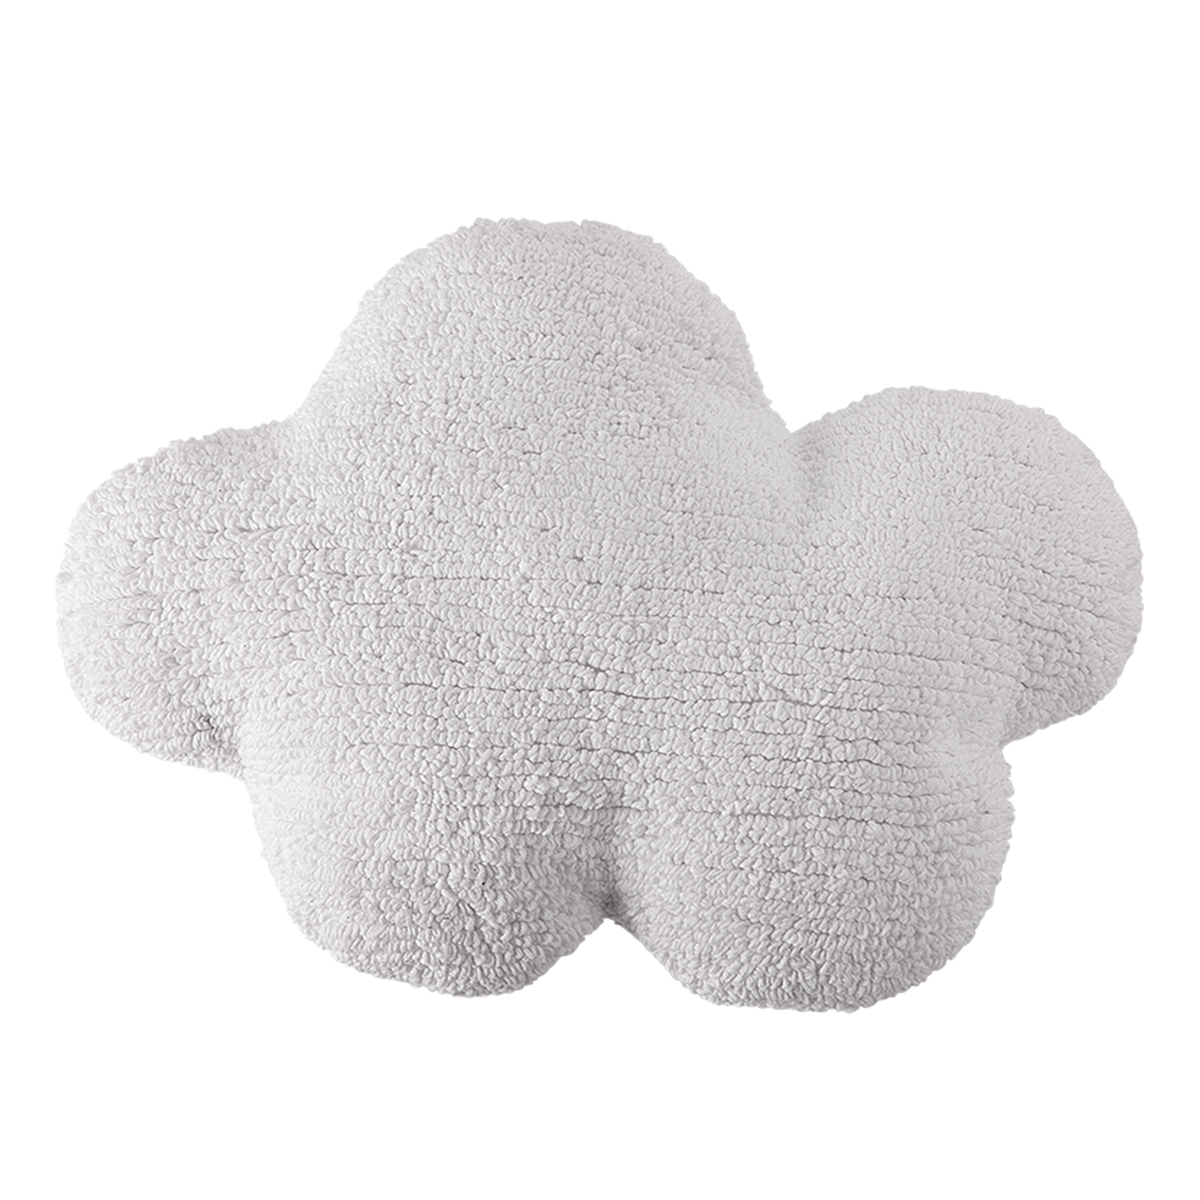 Lorena Canals Cloud Cushion in White